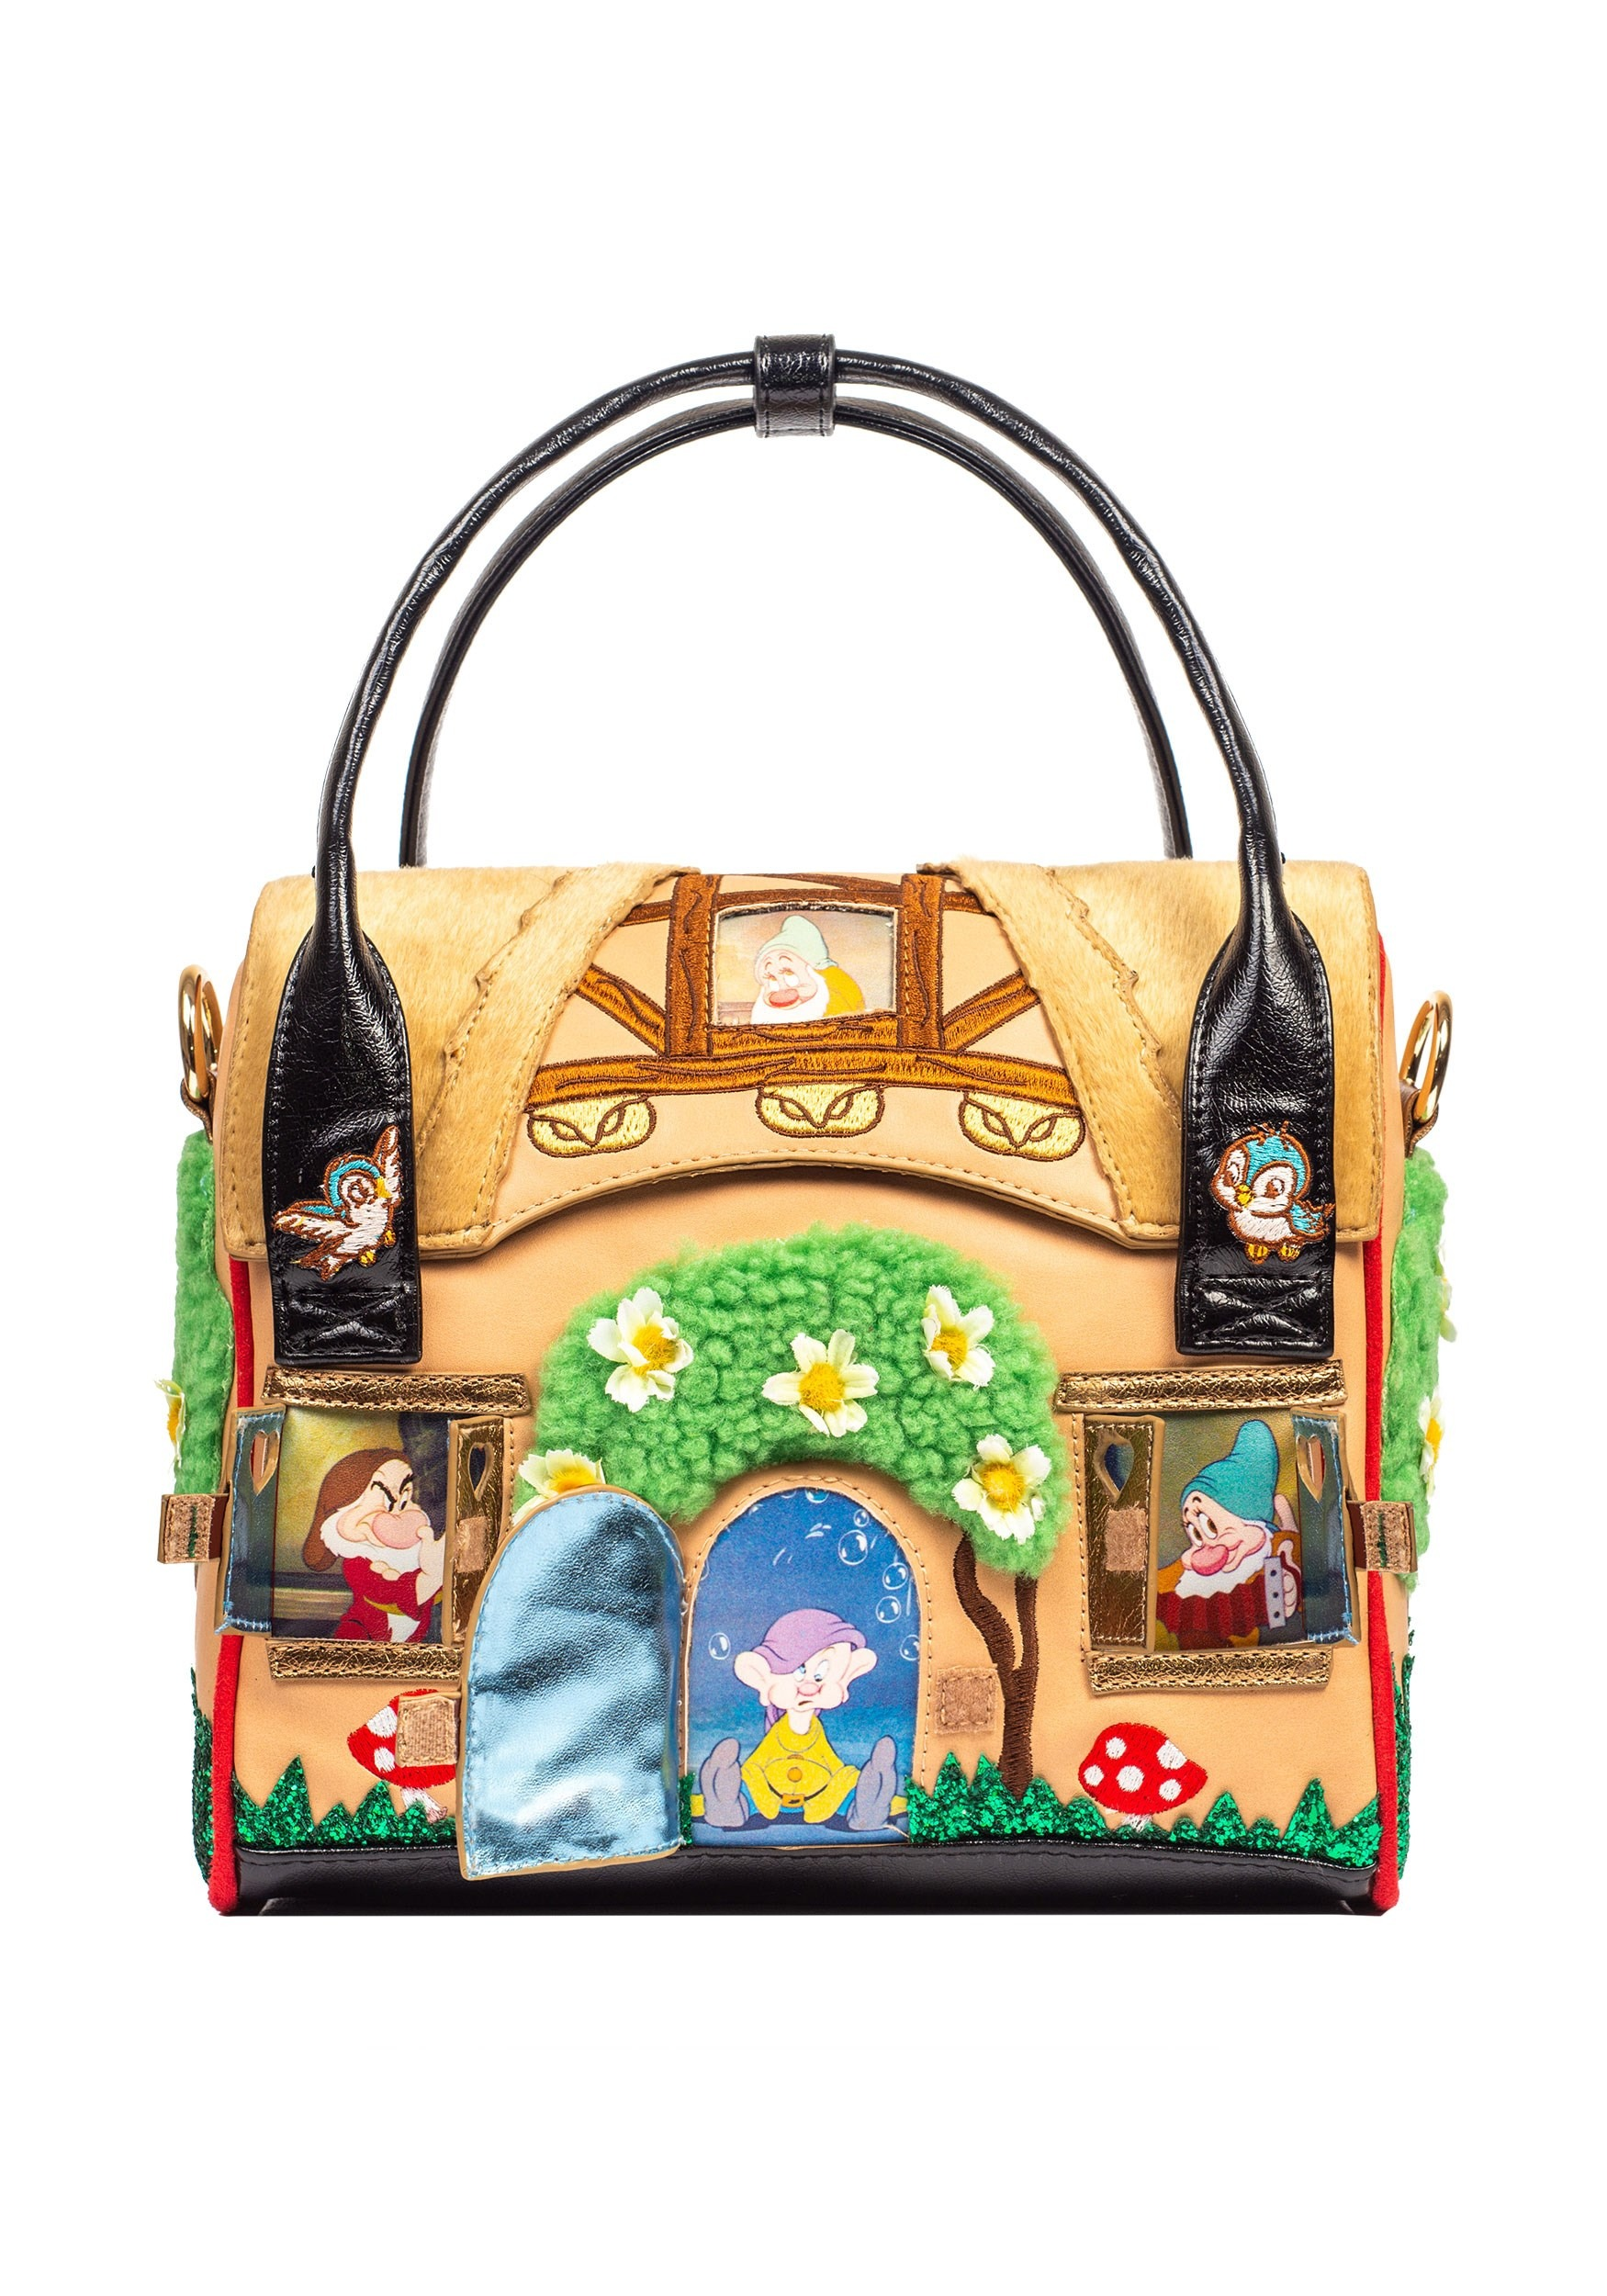 Irregular Choice Disney Princess Snow White Happily Ever After Handbag